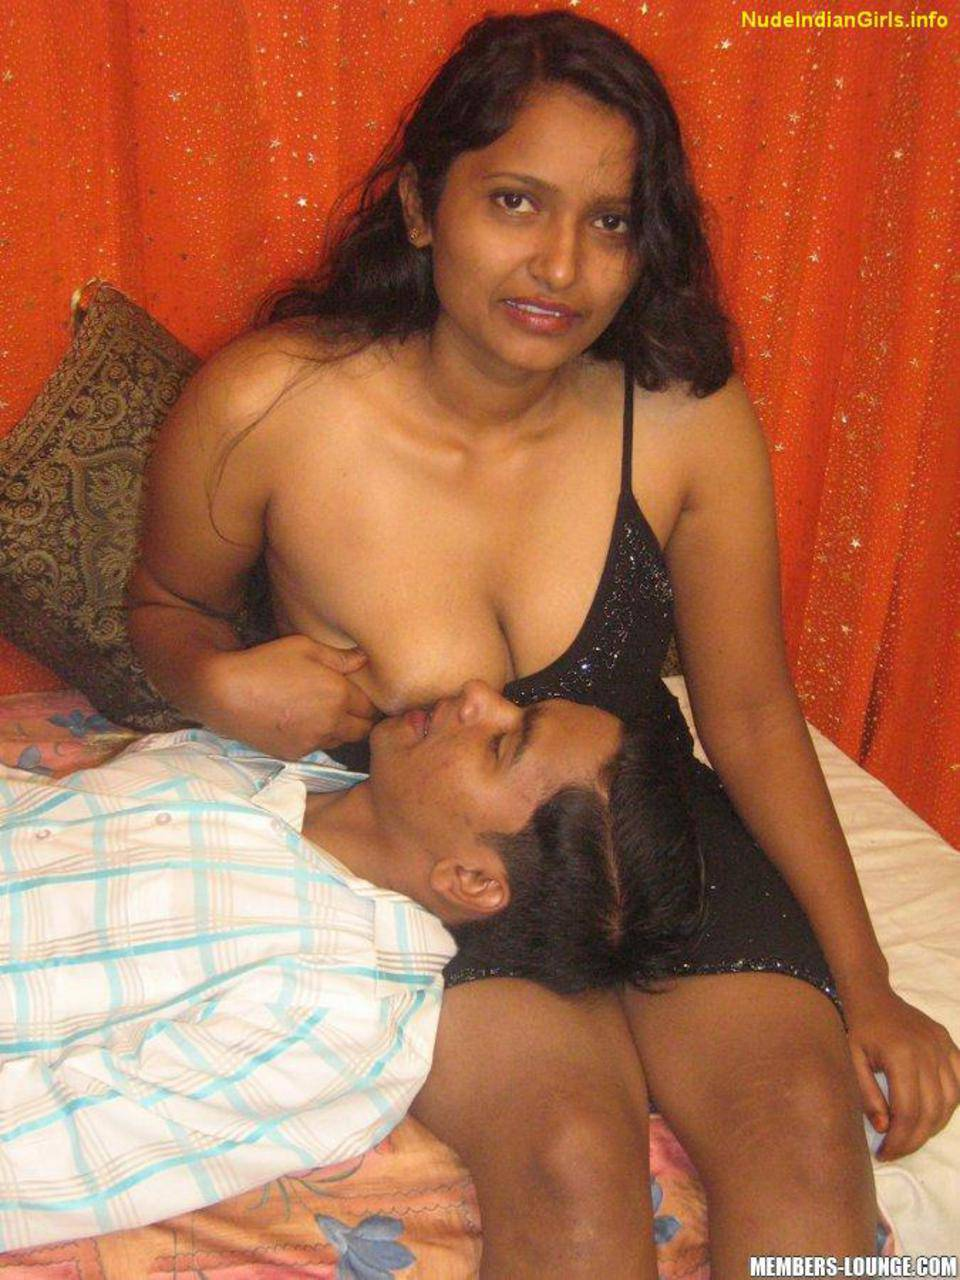 Indian porn image galleries in hd naked videos